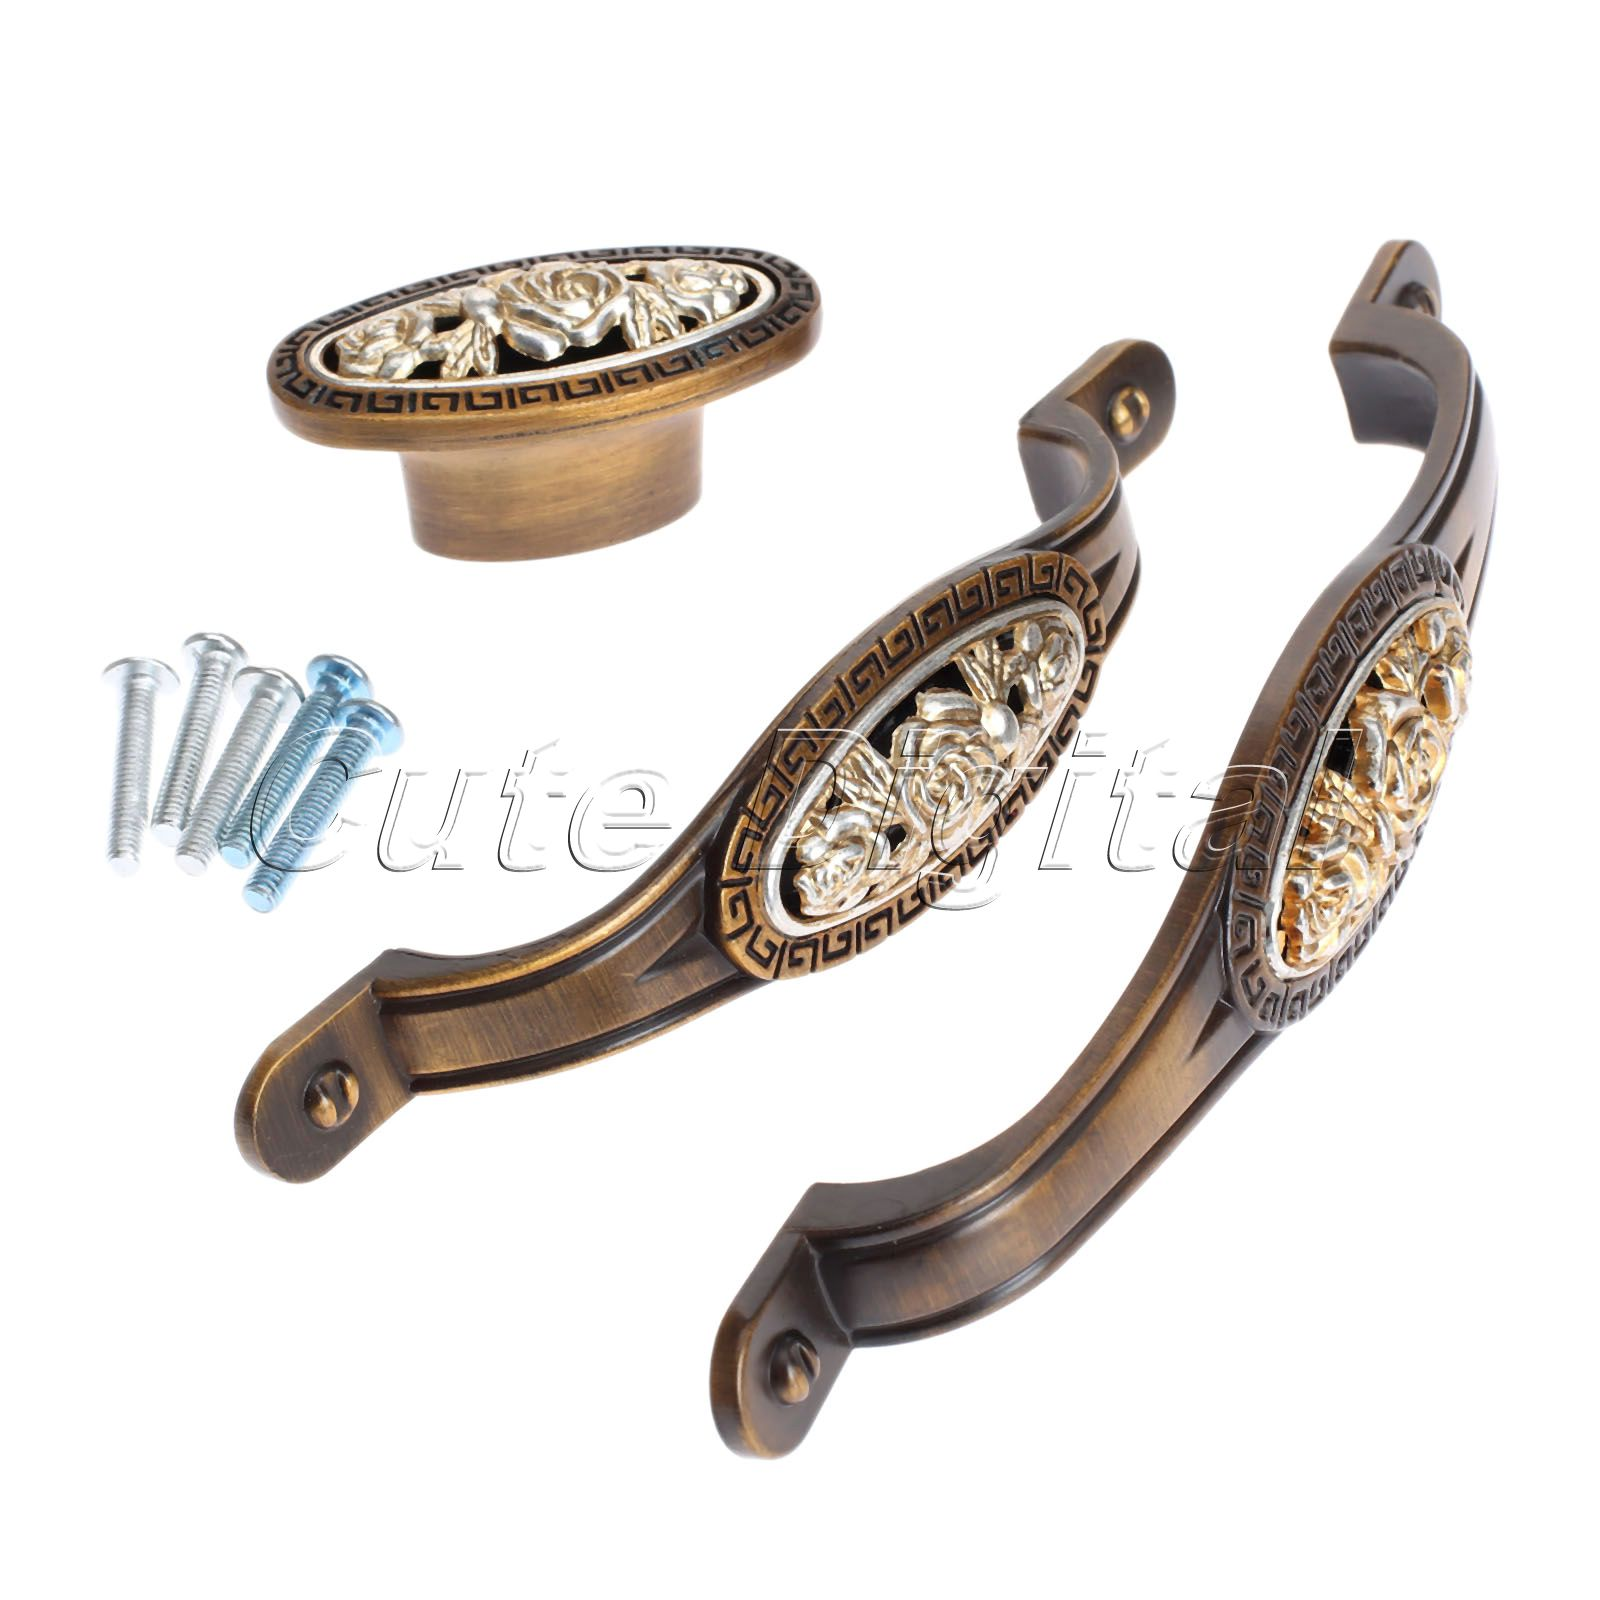 Vintage Flower Alloy Door Handles Cabinet Drawer Wardrobe Closet Pull Handle Furniture Decorative Knobs Single Hole/96mm/128mm 10pcs pure copperkitchen cabinet handles and knobs black furniture handle for kitchen cabinet drawer pull 96mm 128mm single hole